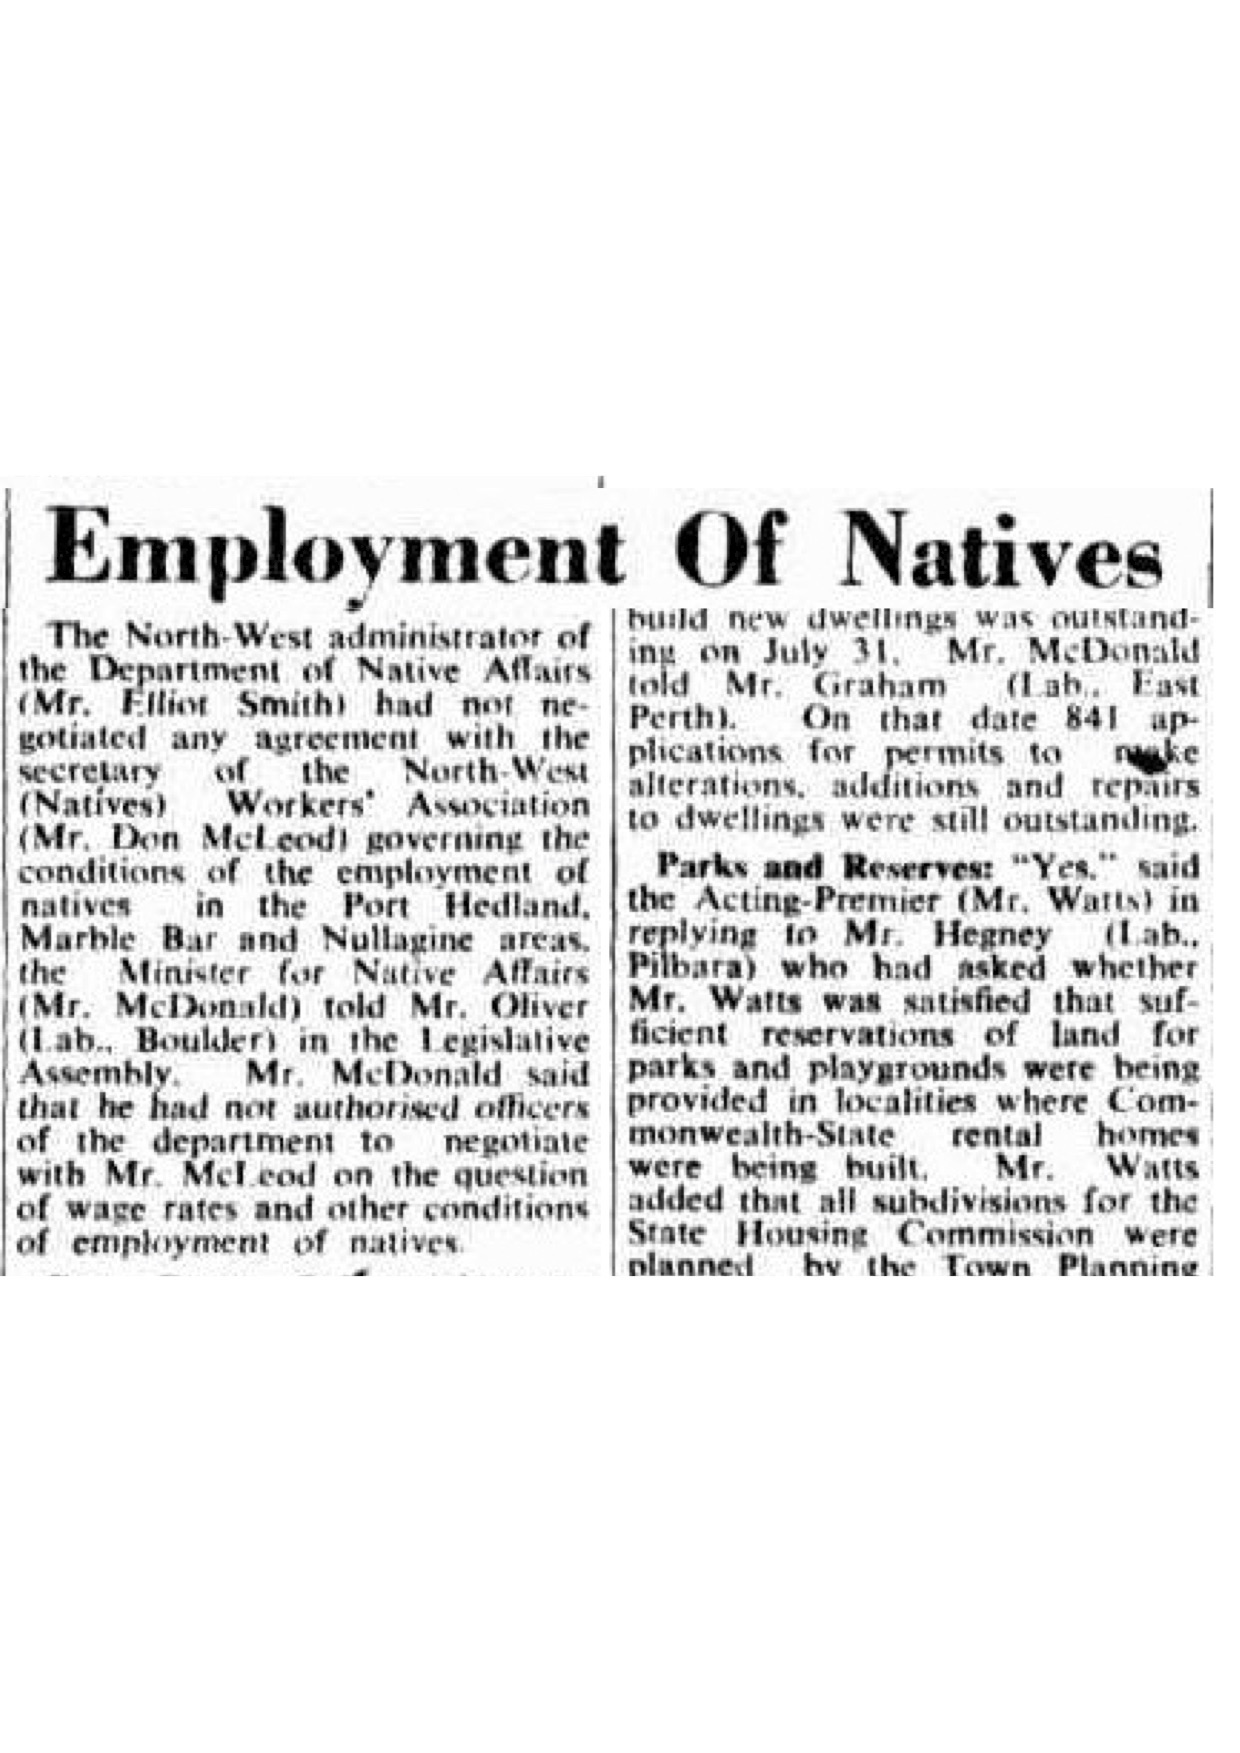 Employment of Natives newspaper article